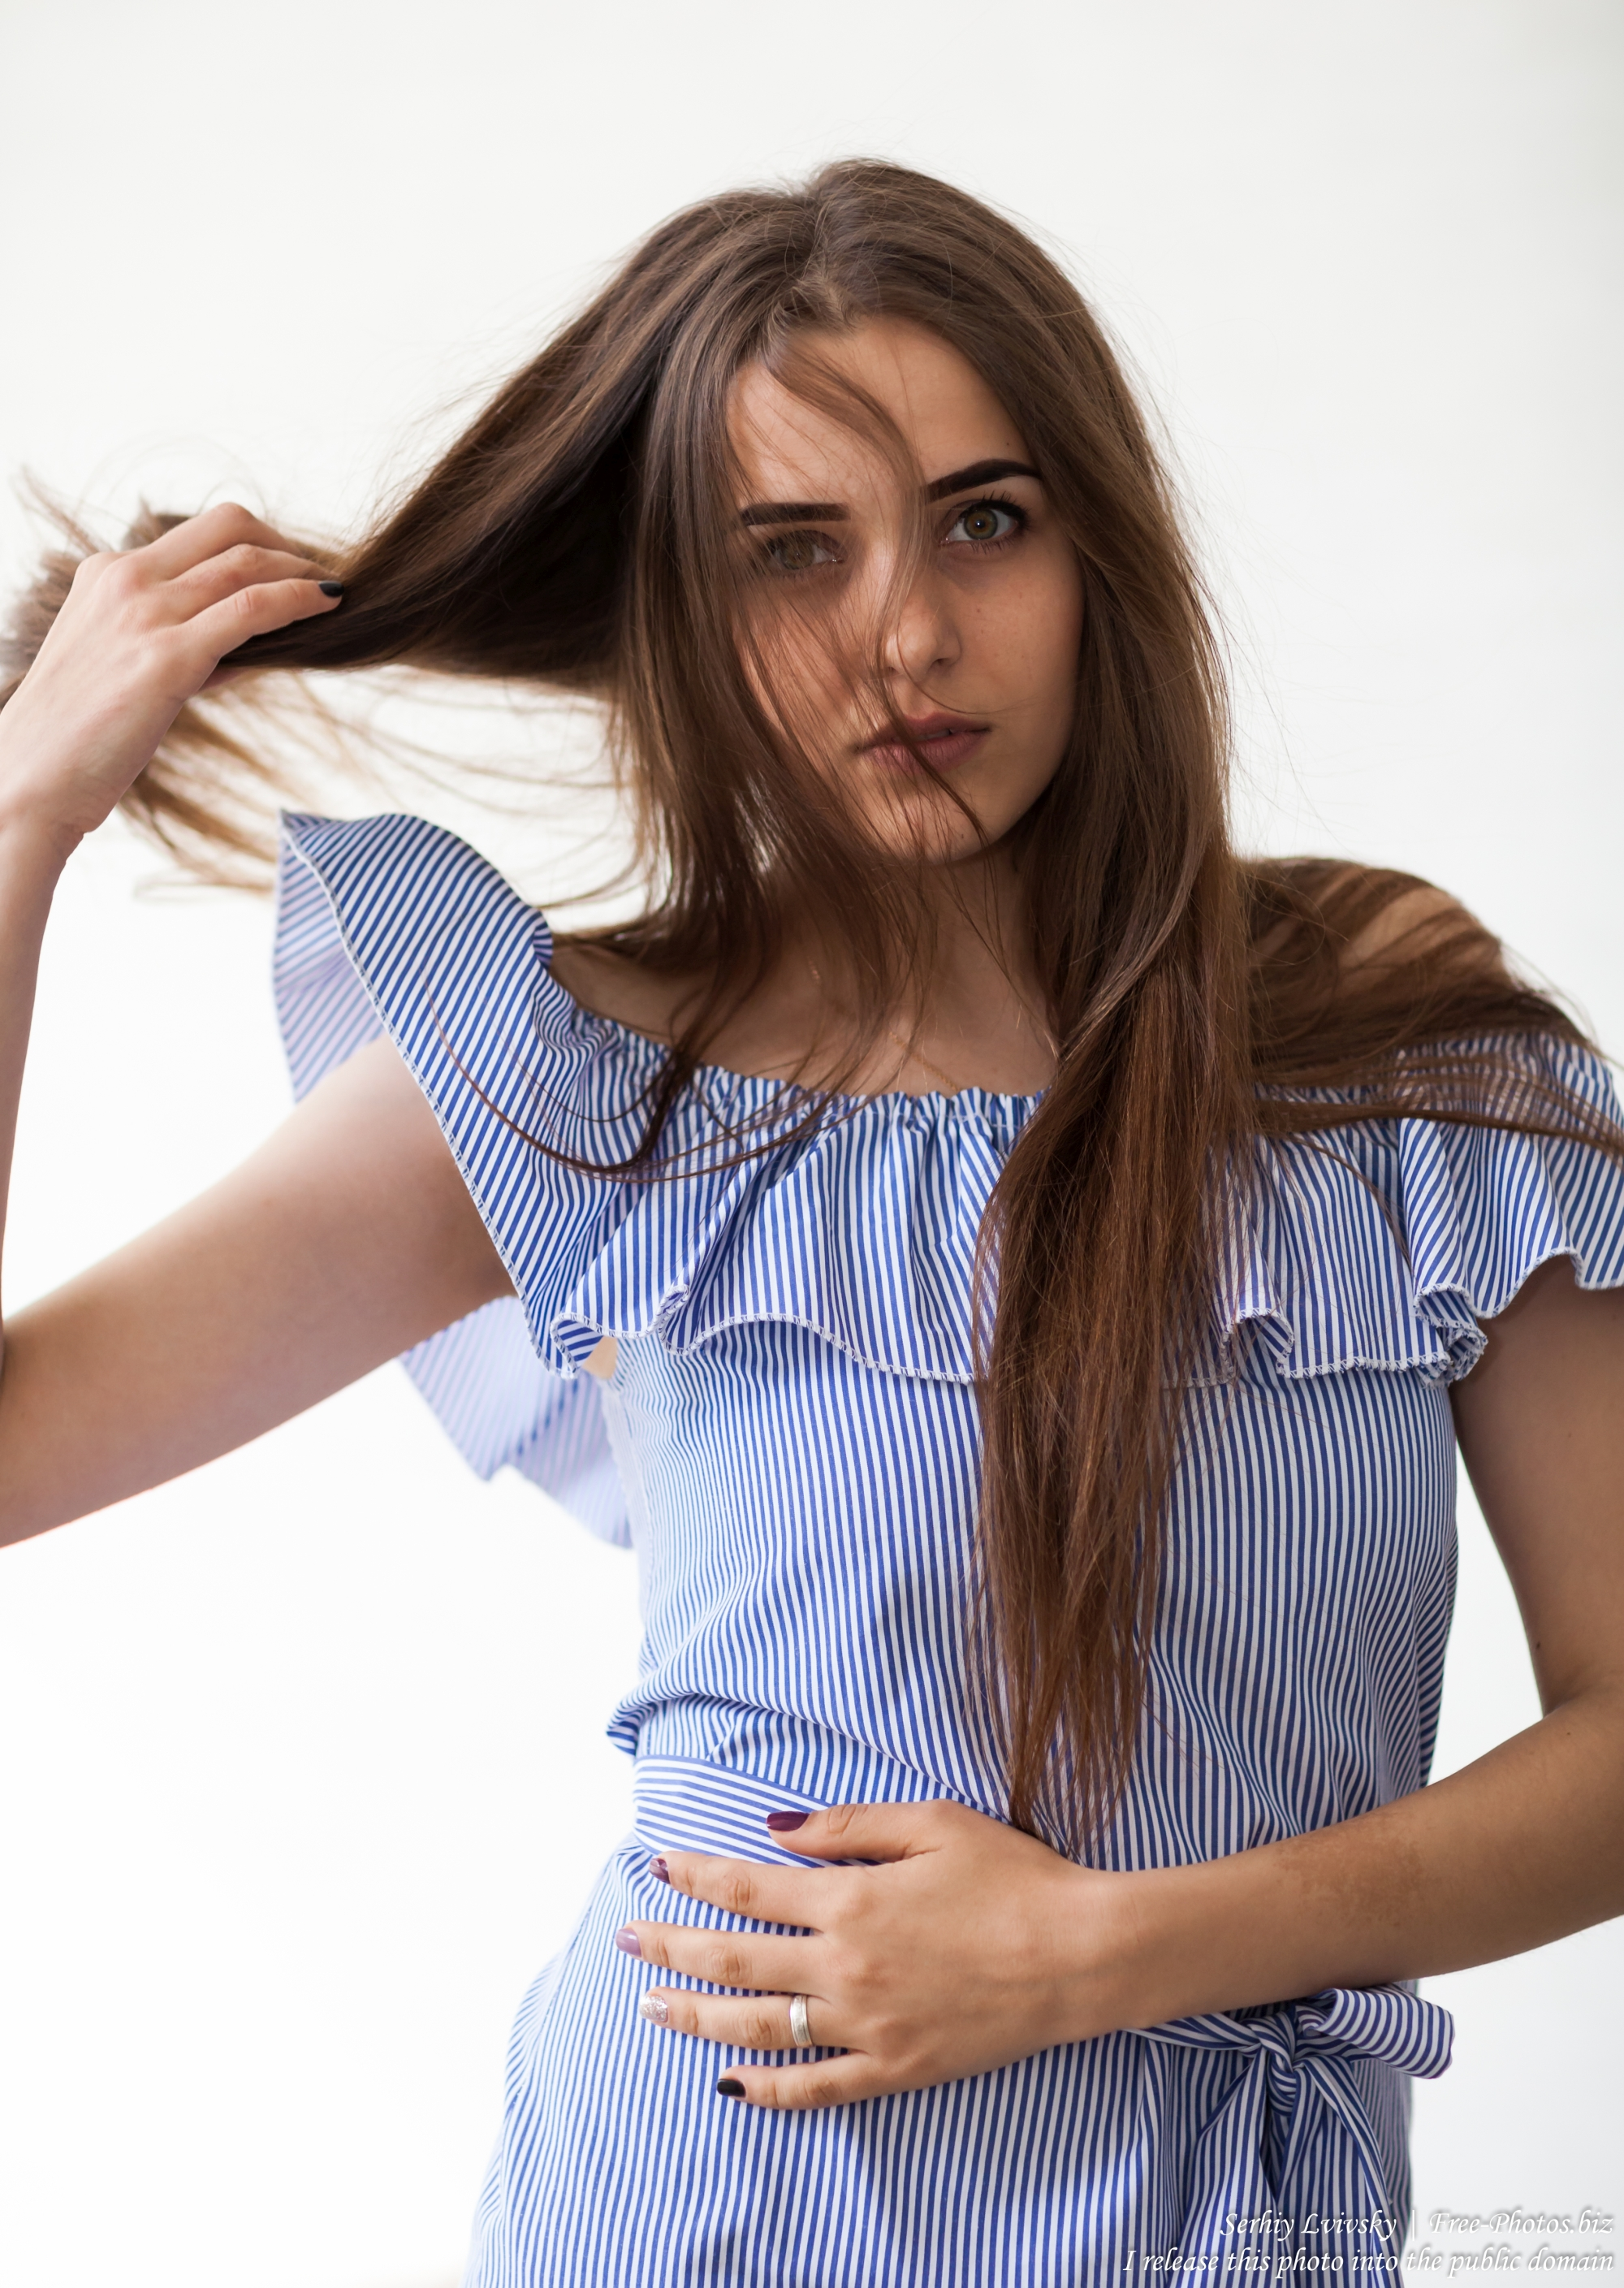 olena_a_20-year-old_brunette_girl_photographed_in_june_2017_by_serhiy_lvivsky_03